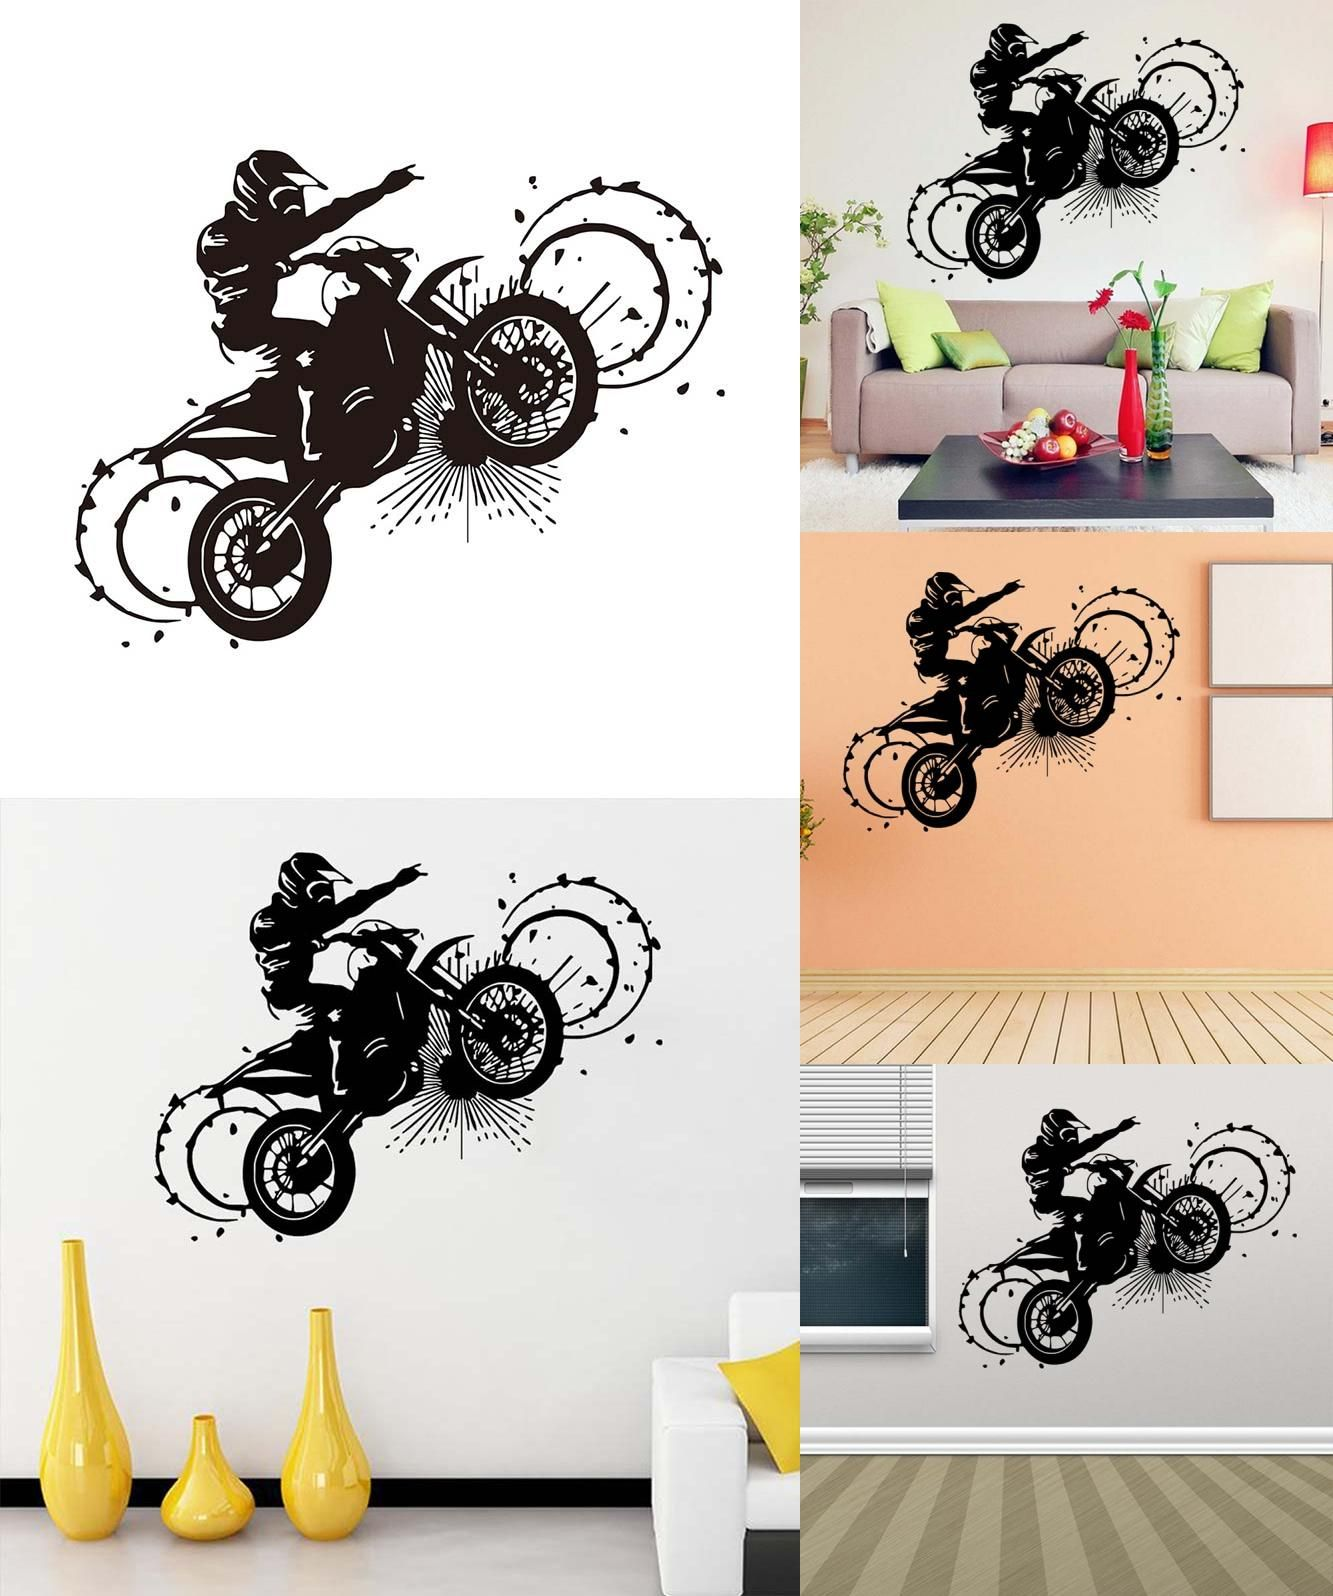 Visit to buy i go motorcycle wall stickers vinyl creative plane